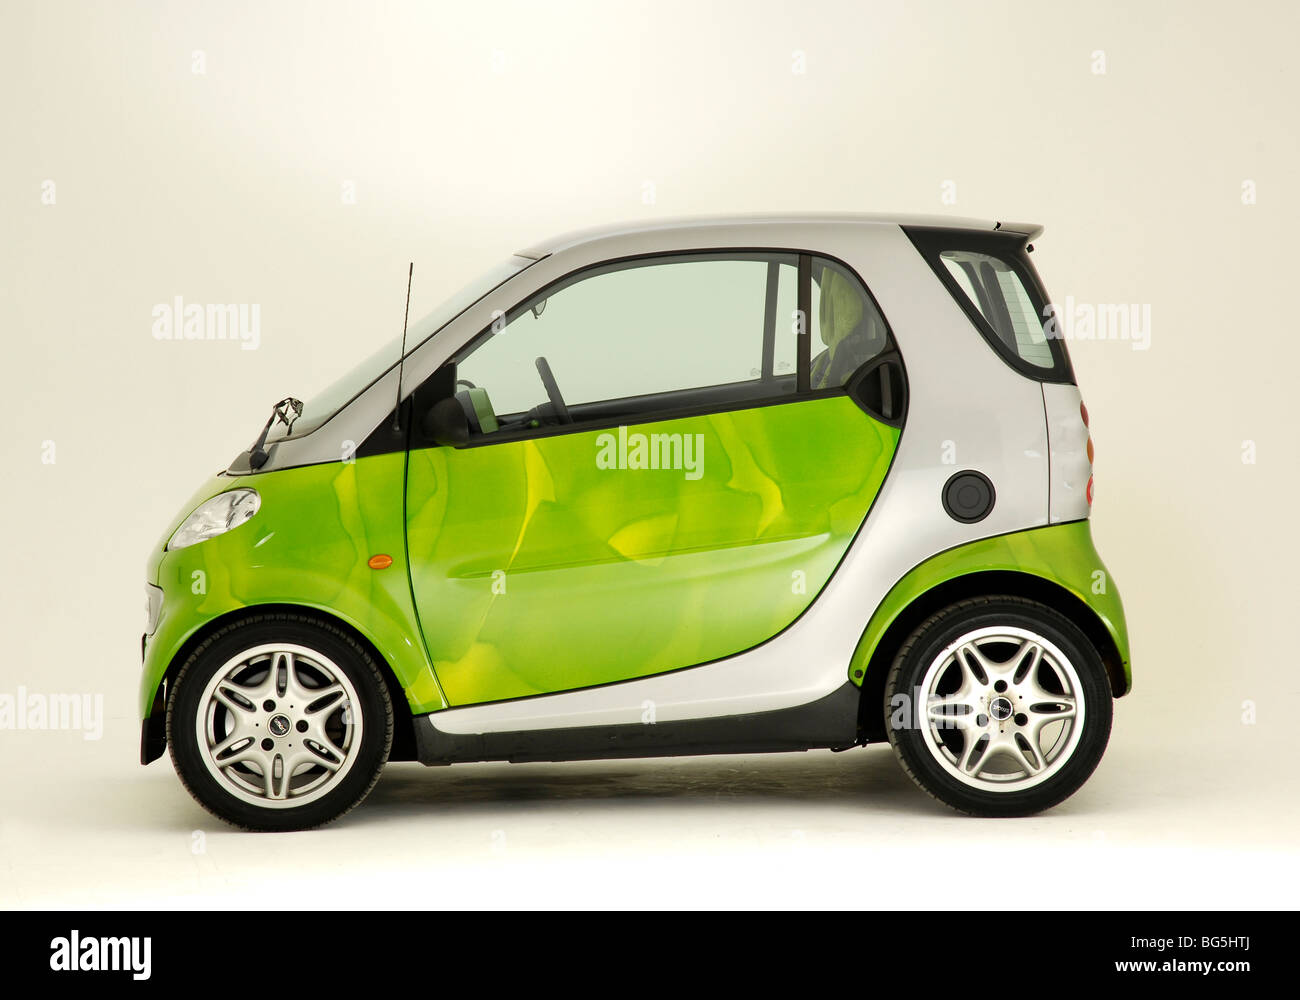 2001 Smart car mk1 - Stock Image